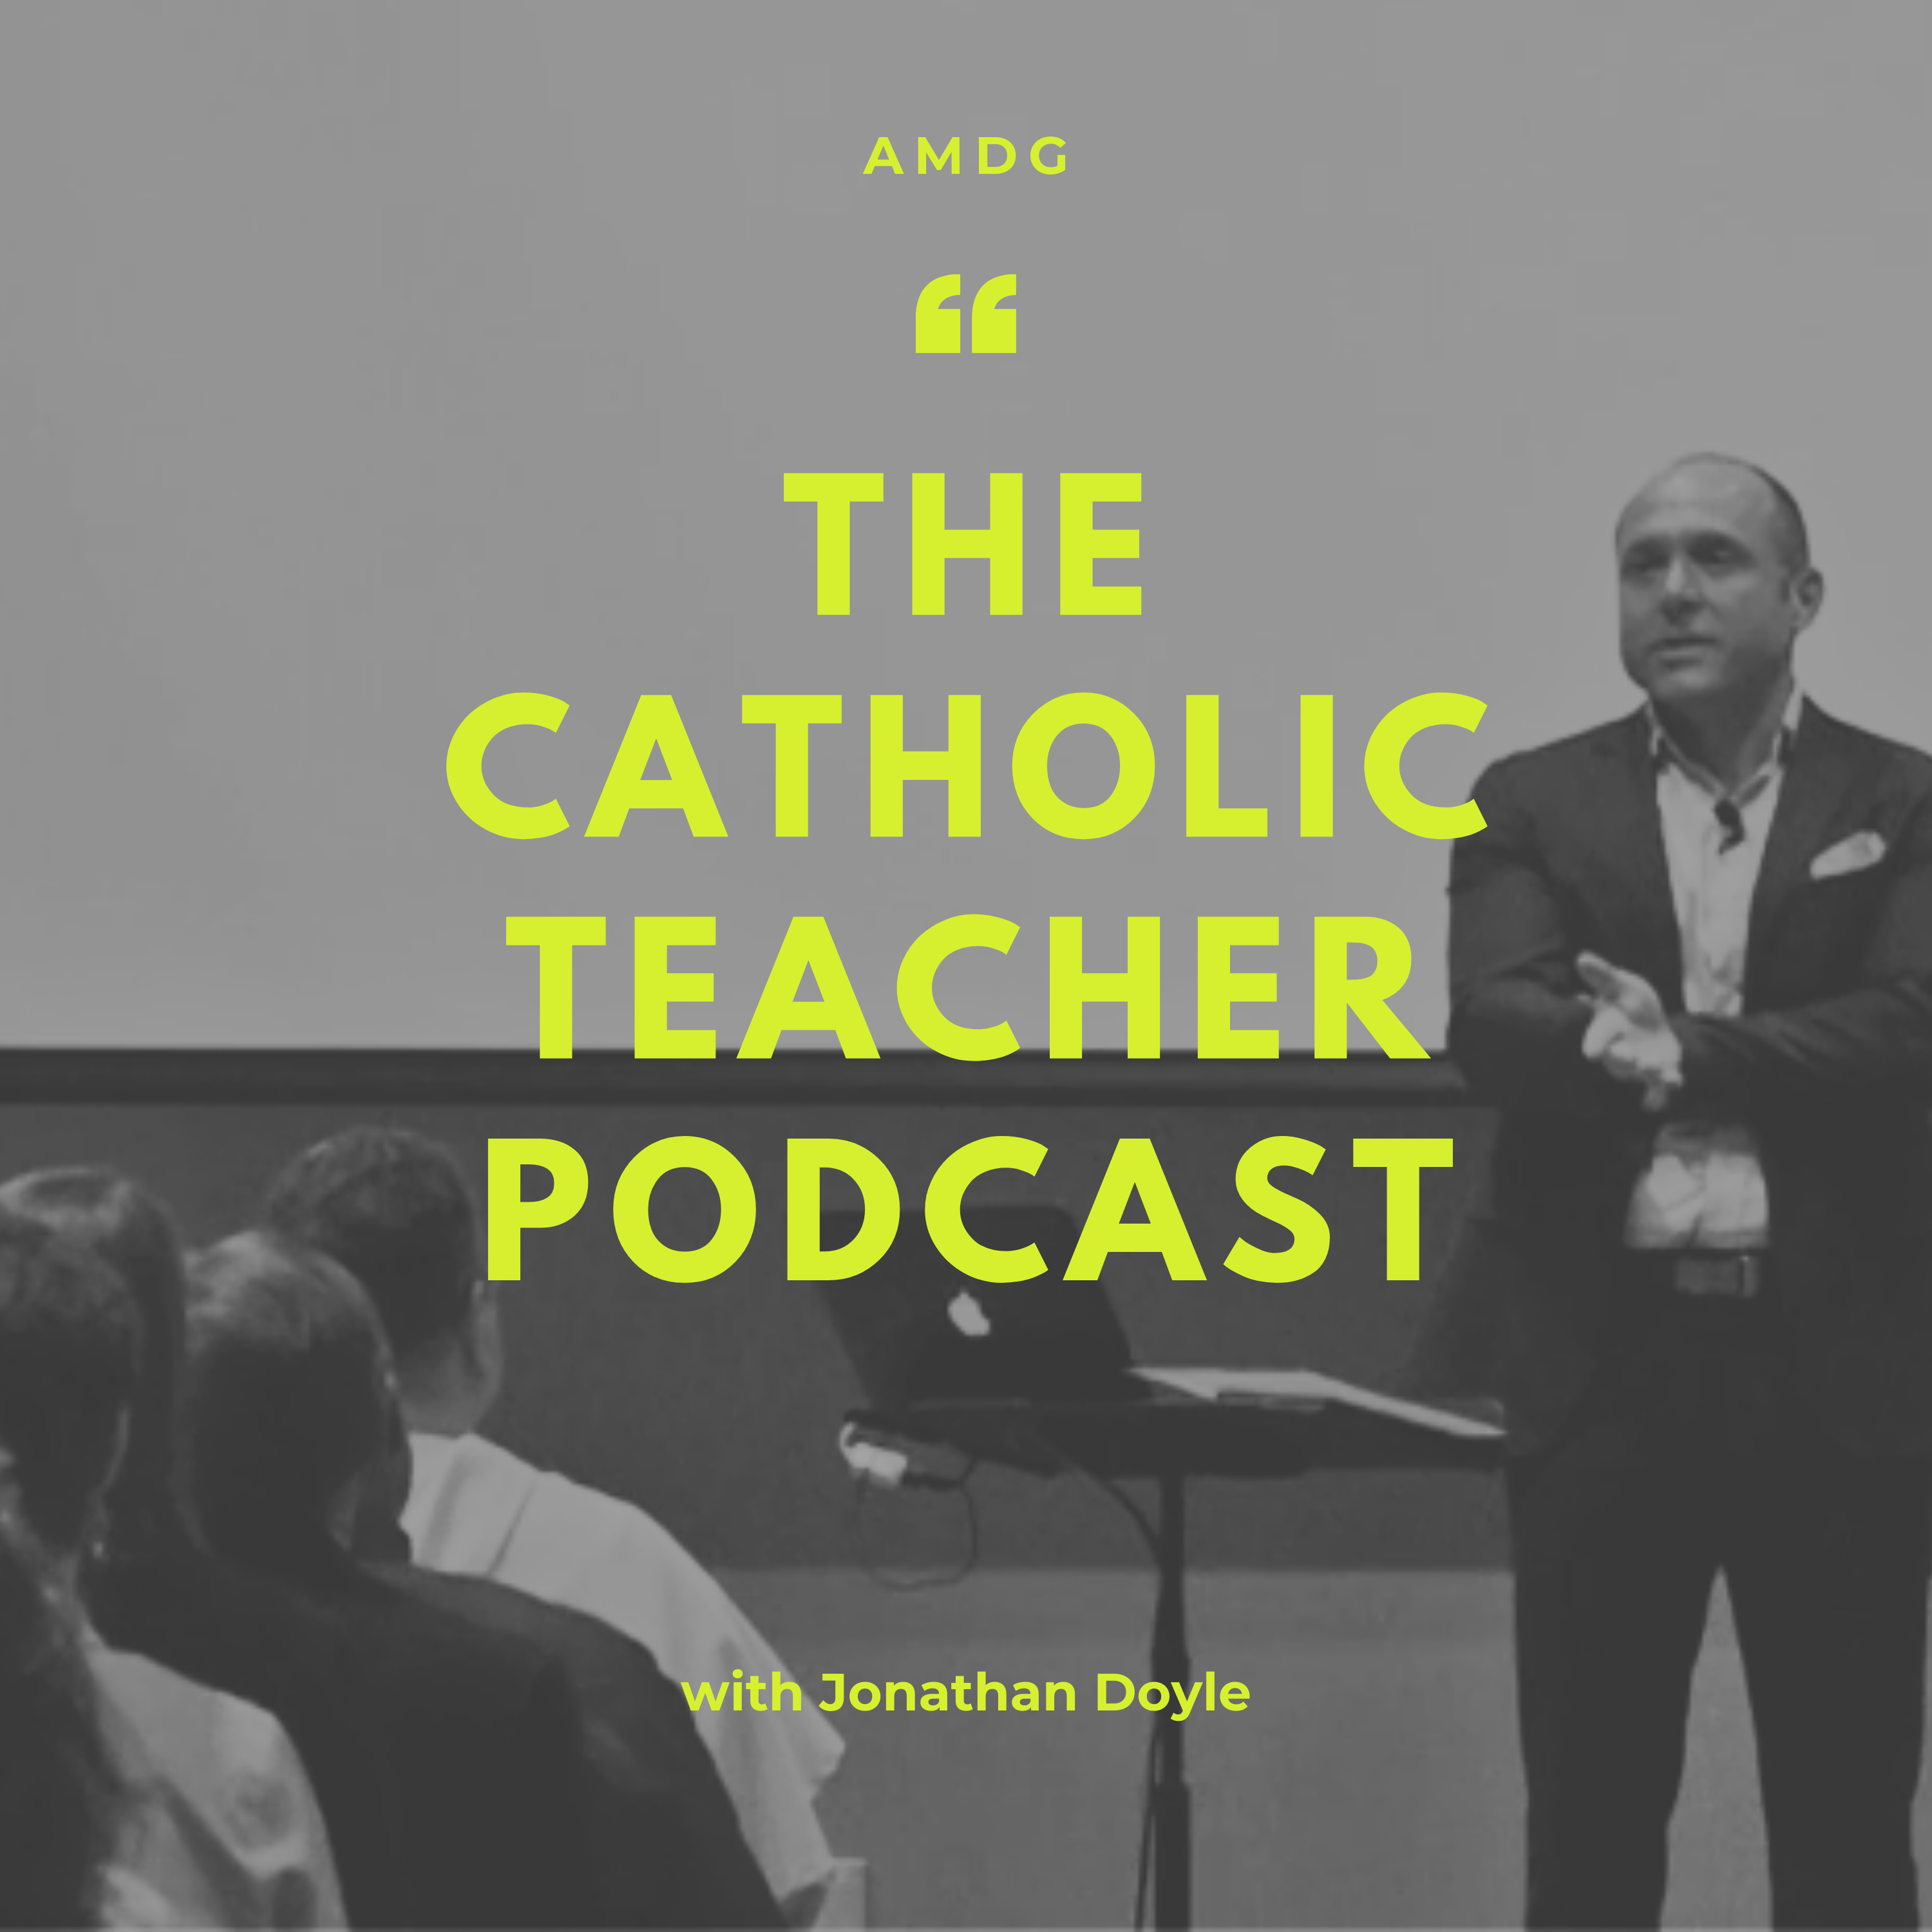 The Catholic Teacher Podcast